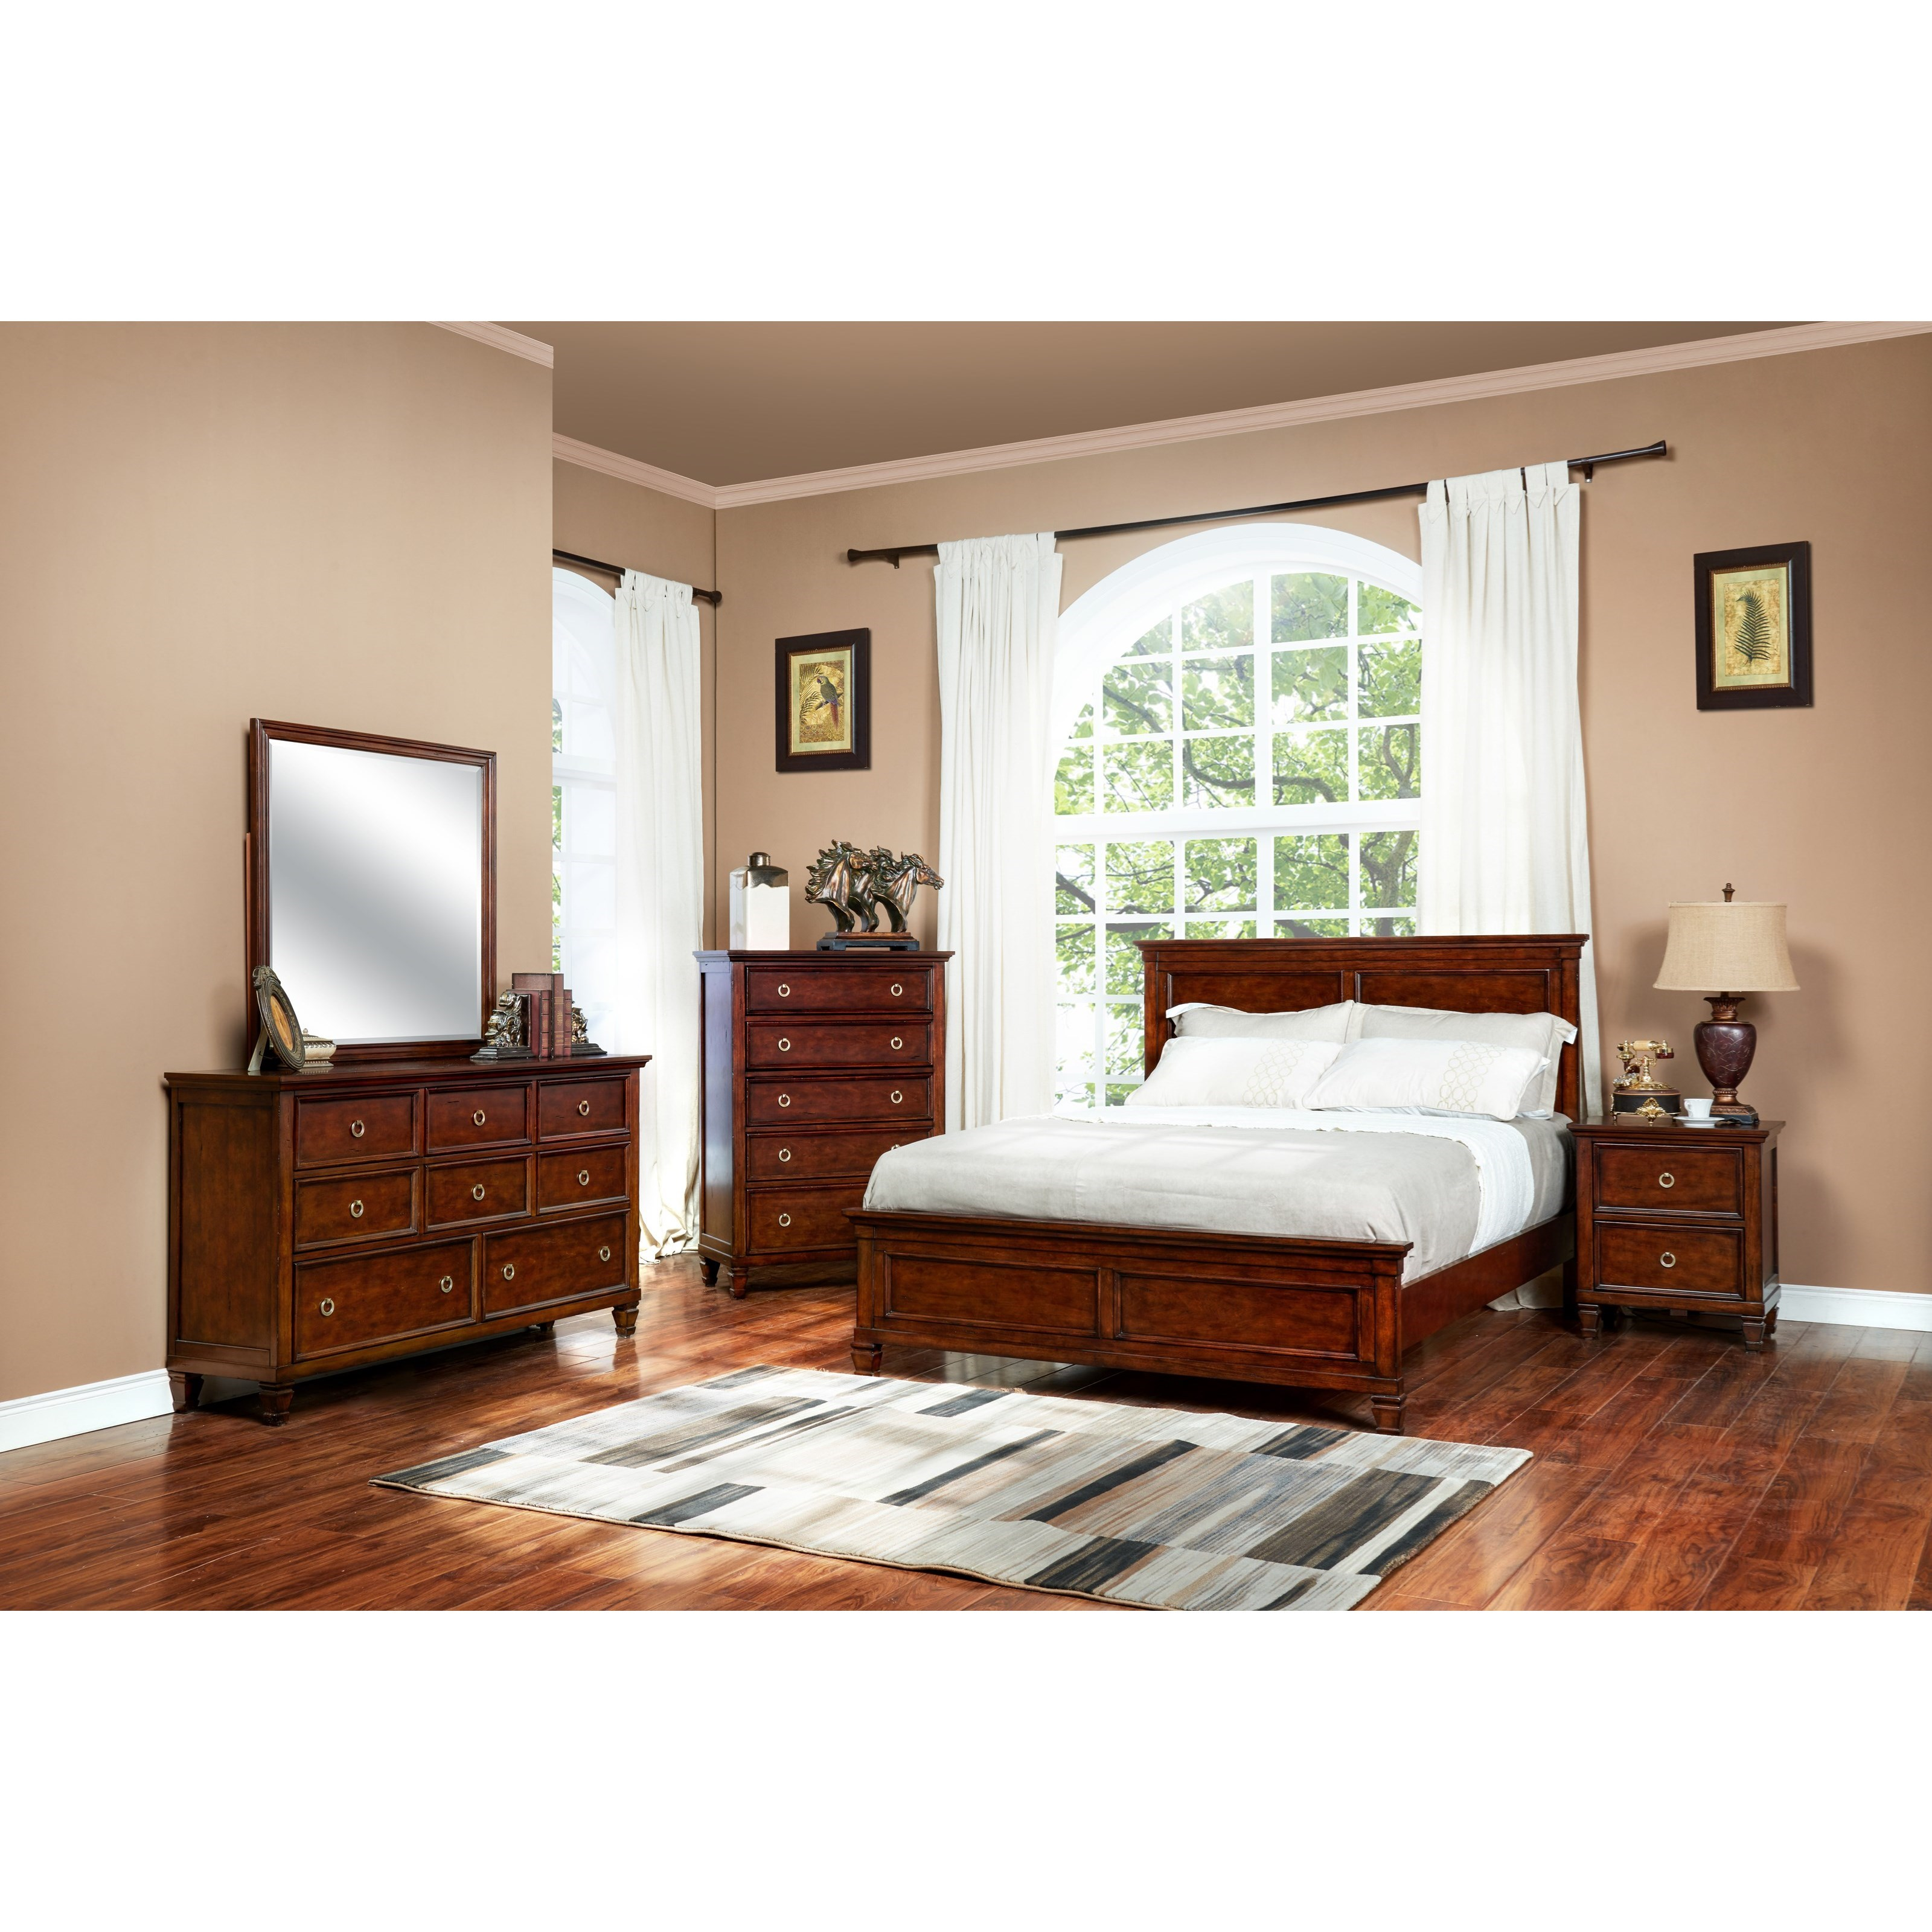 Tamarack Queen Bedroom Group by New Classic at Darvin Furniture